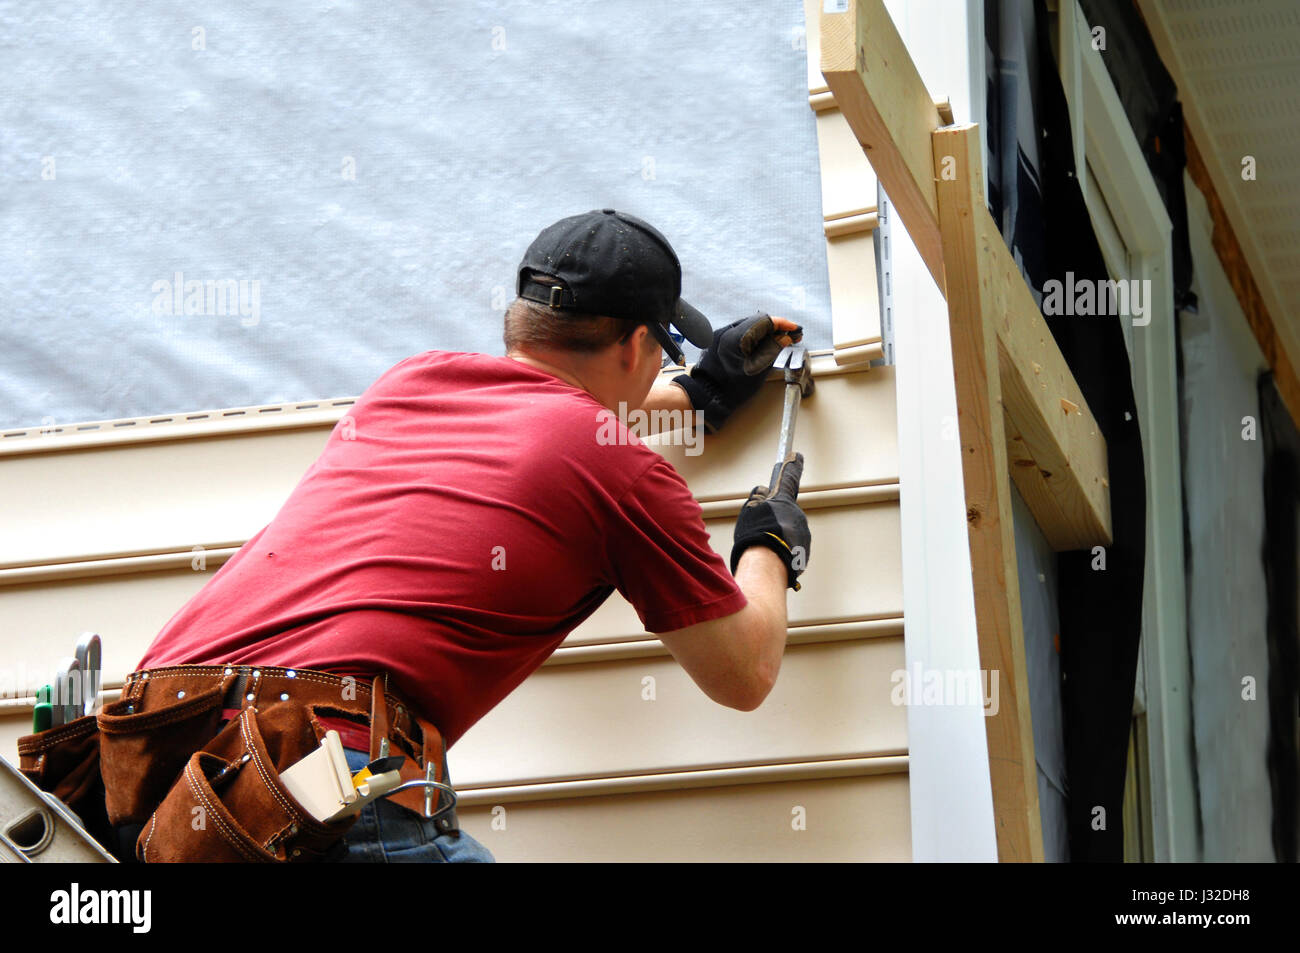 Young homeowner installs siding to his home.  He is holding a hammer and wearing a tool belt. - Stock Image